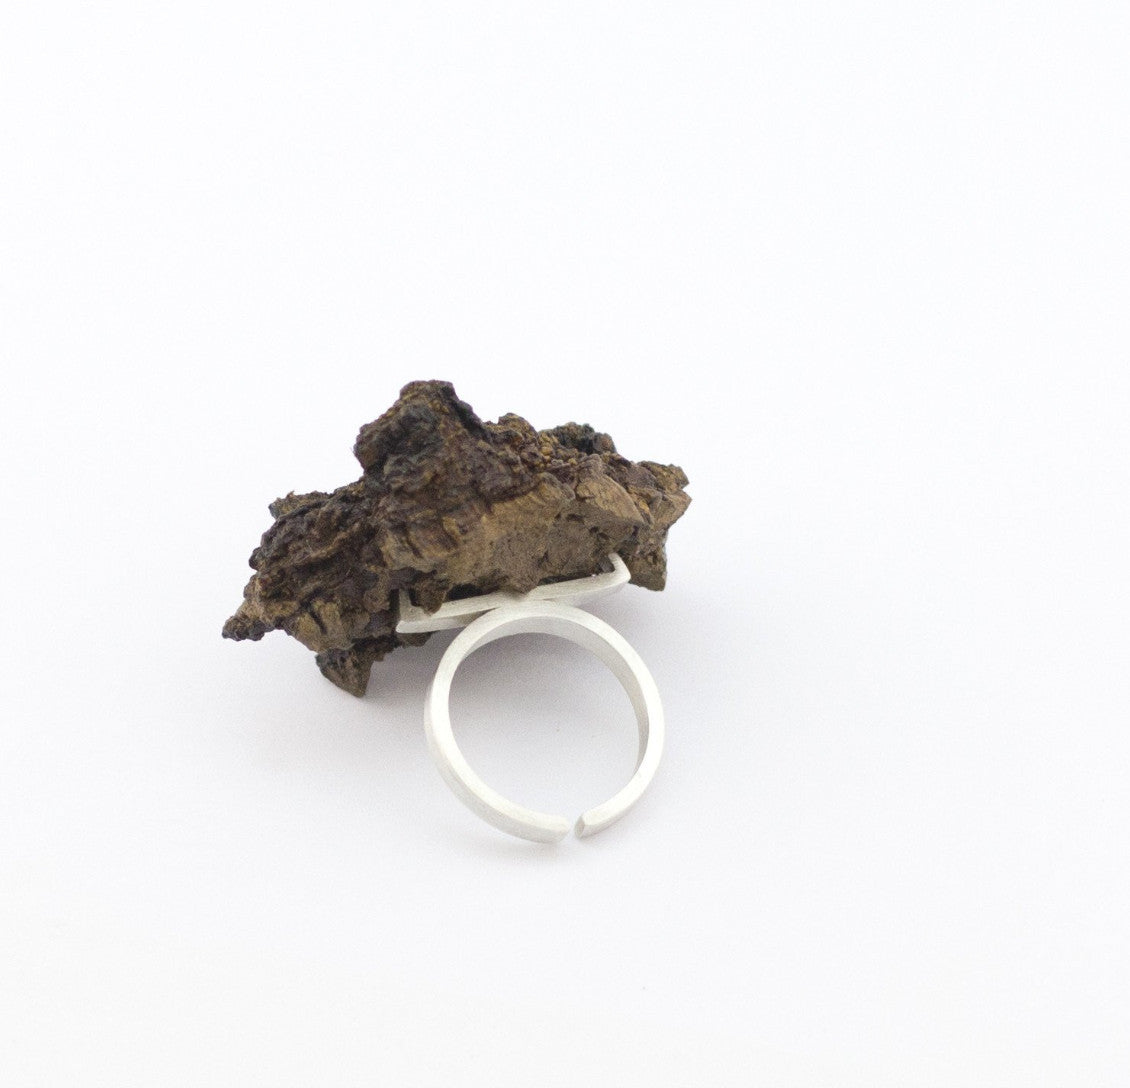 Sterling silver ring adorned with cork. The ring weighs 8.4gr and is part of Leonor Silva's Cork Collection.